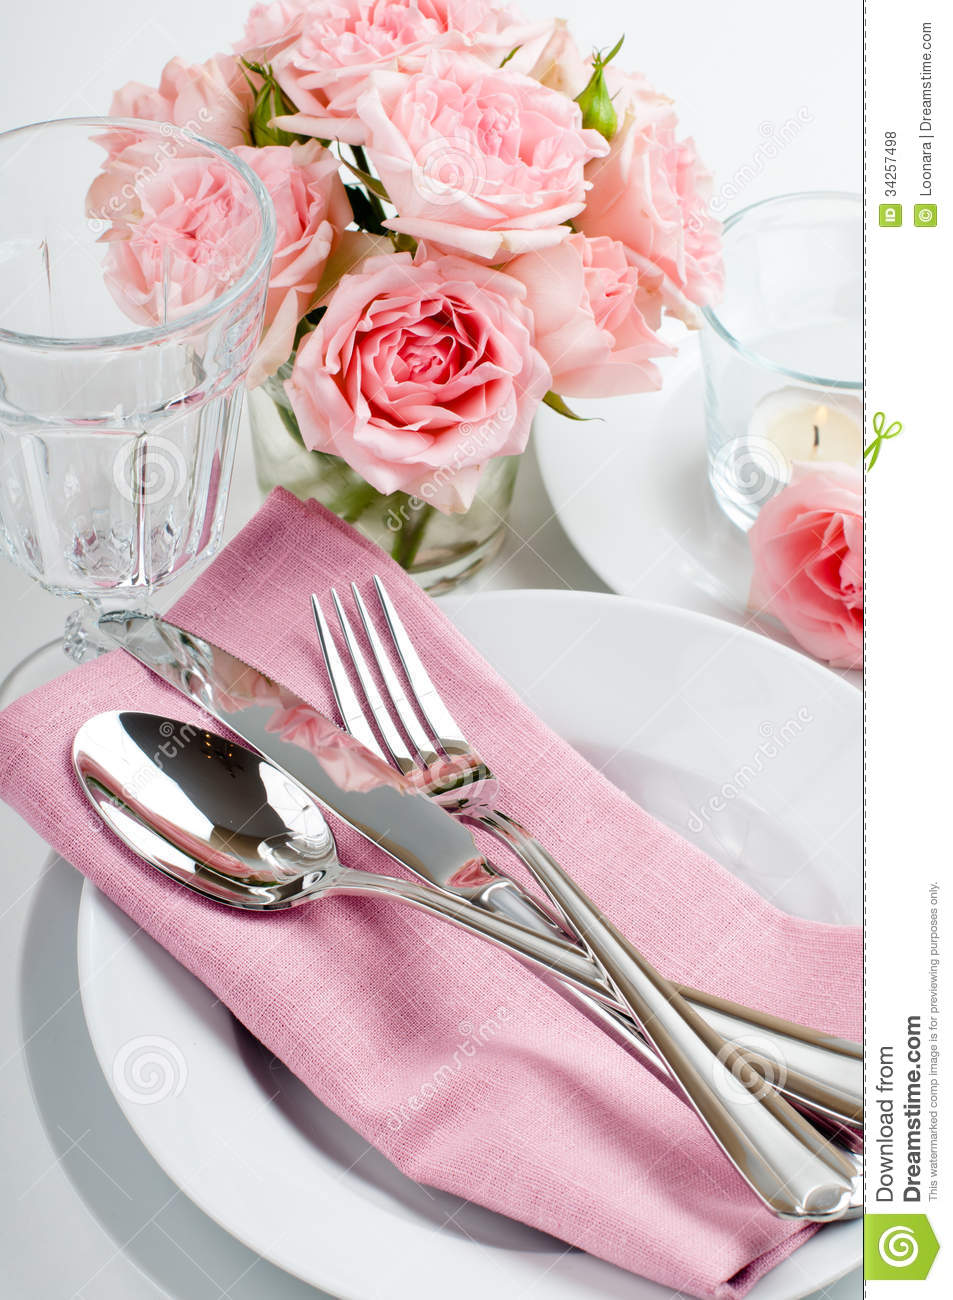 Luxurious Table Setting With Pink Roses Royalty Free Stock